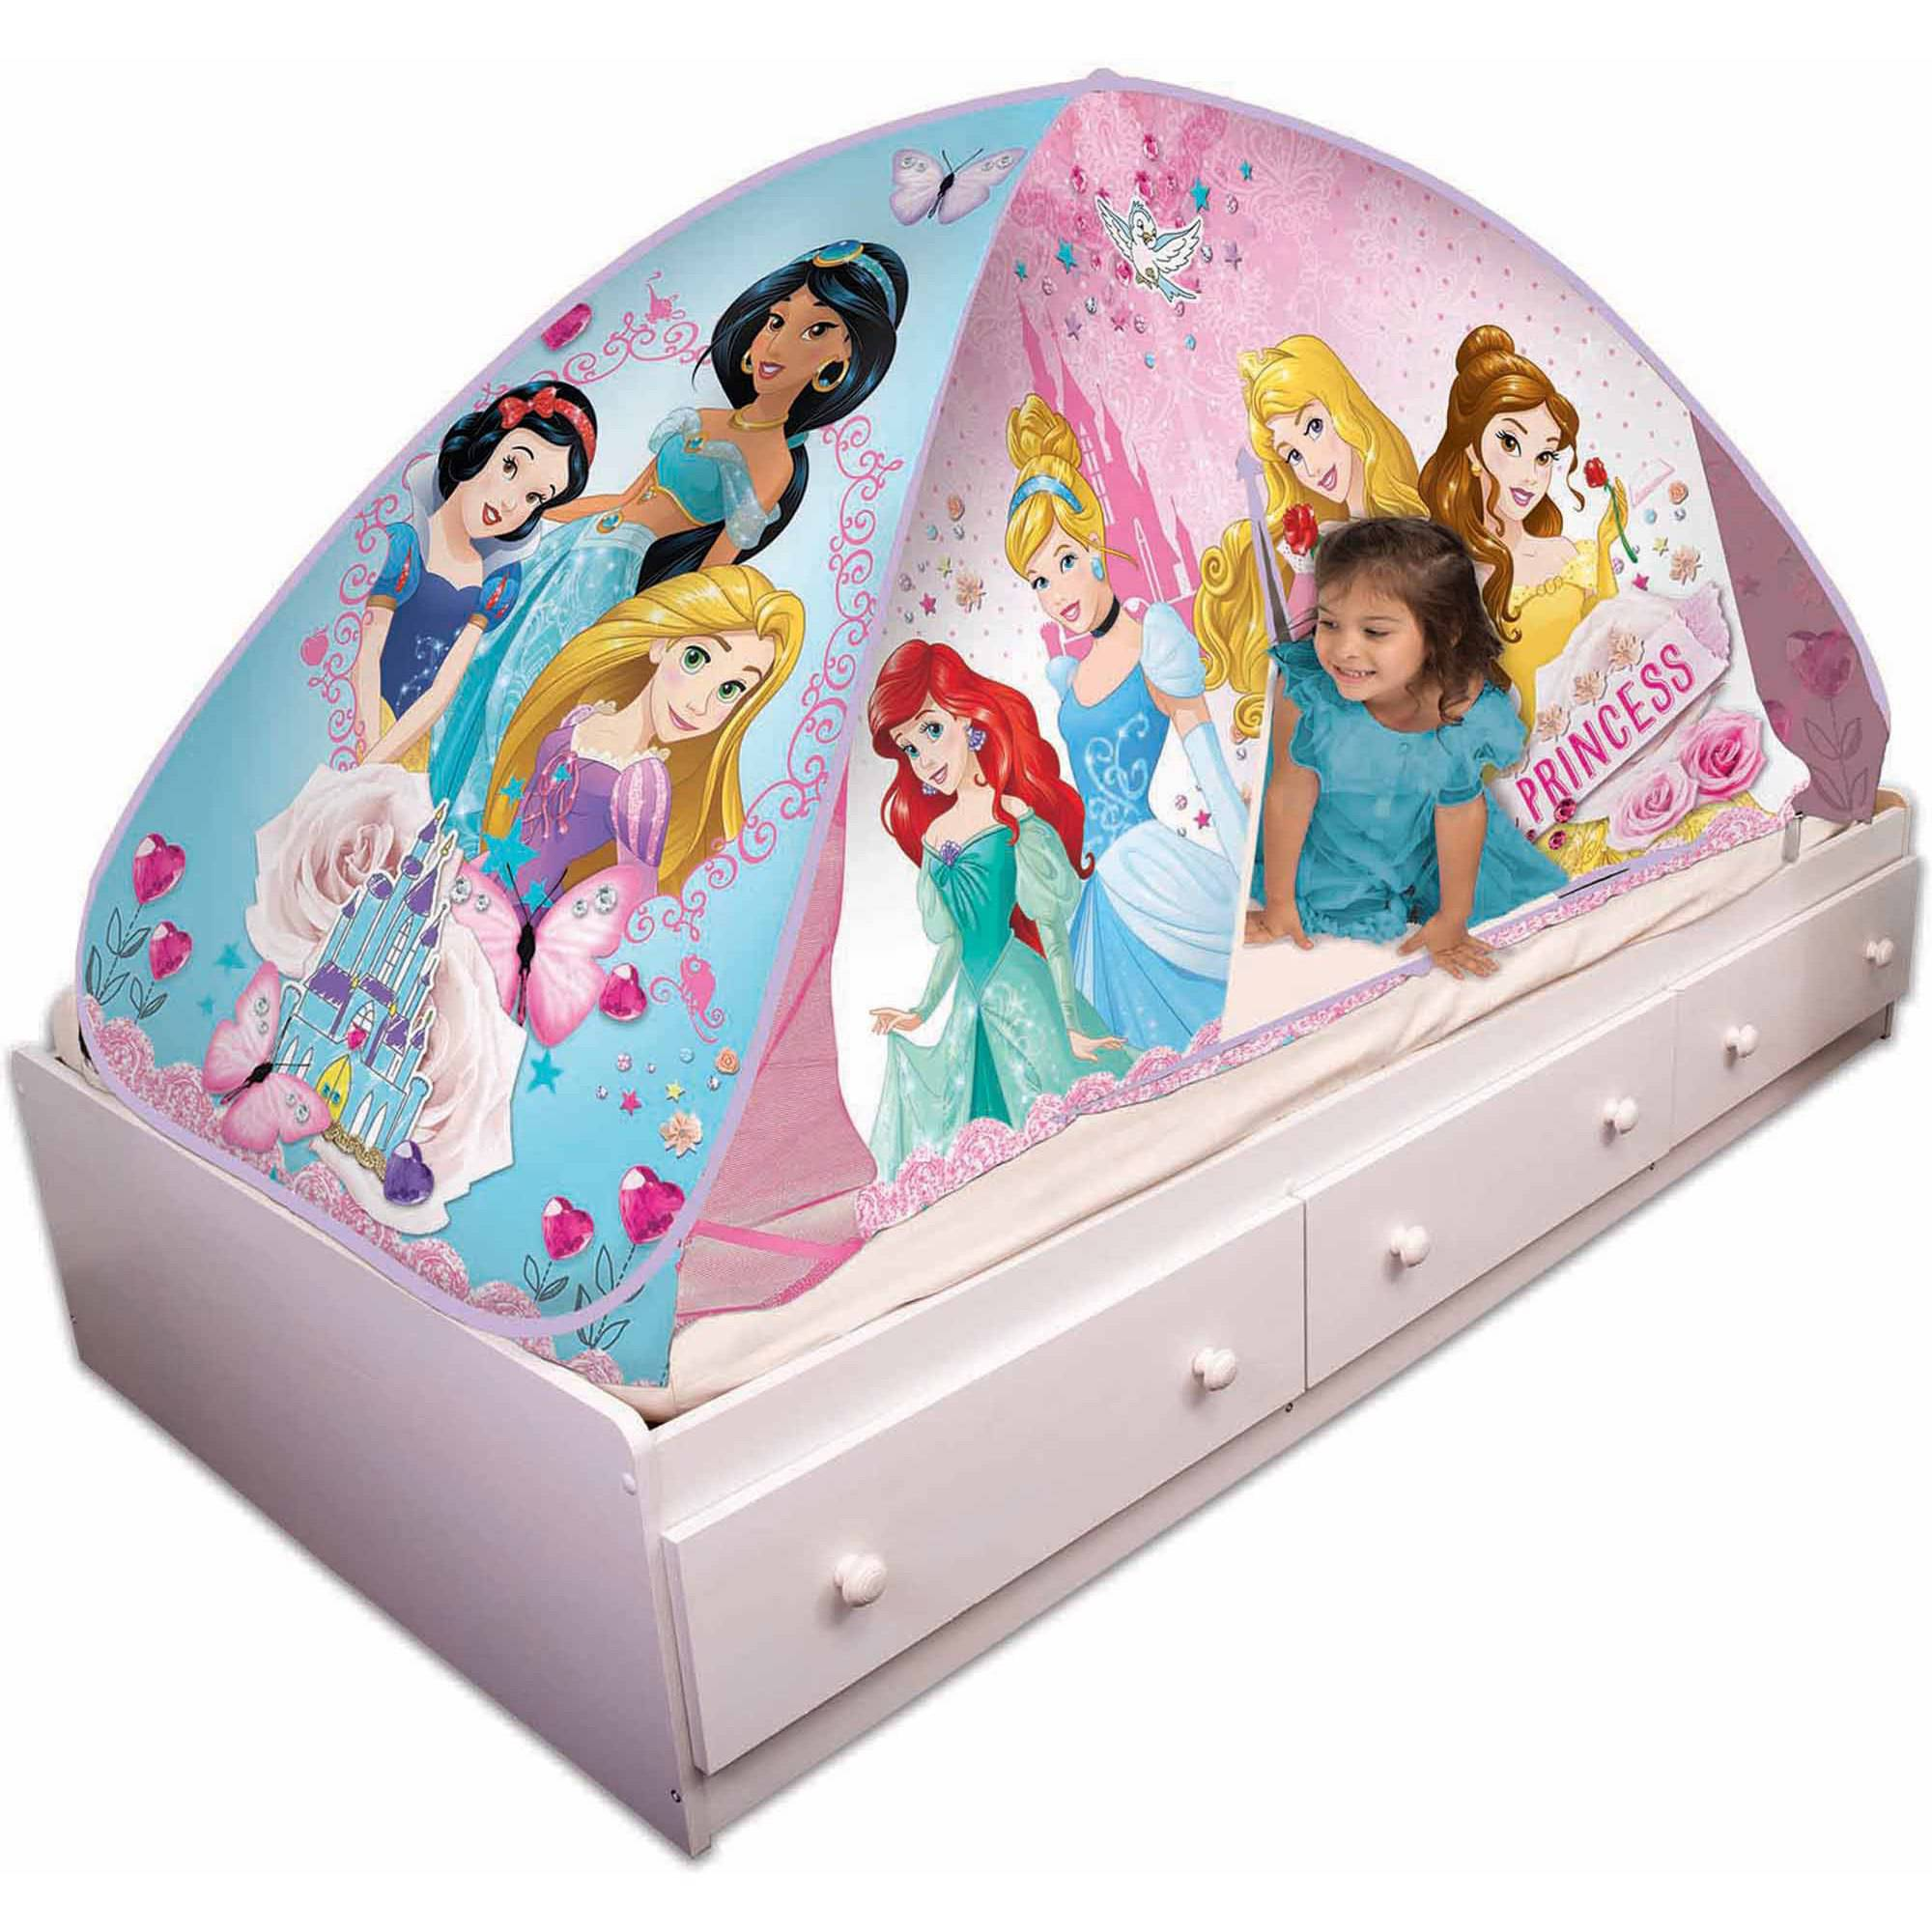 Playhut Disney Princess 2-in-1 Tent  sc 1 st  Walmart & Playhut Disney Princess 2-in-1 Tent - Walmart.com